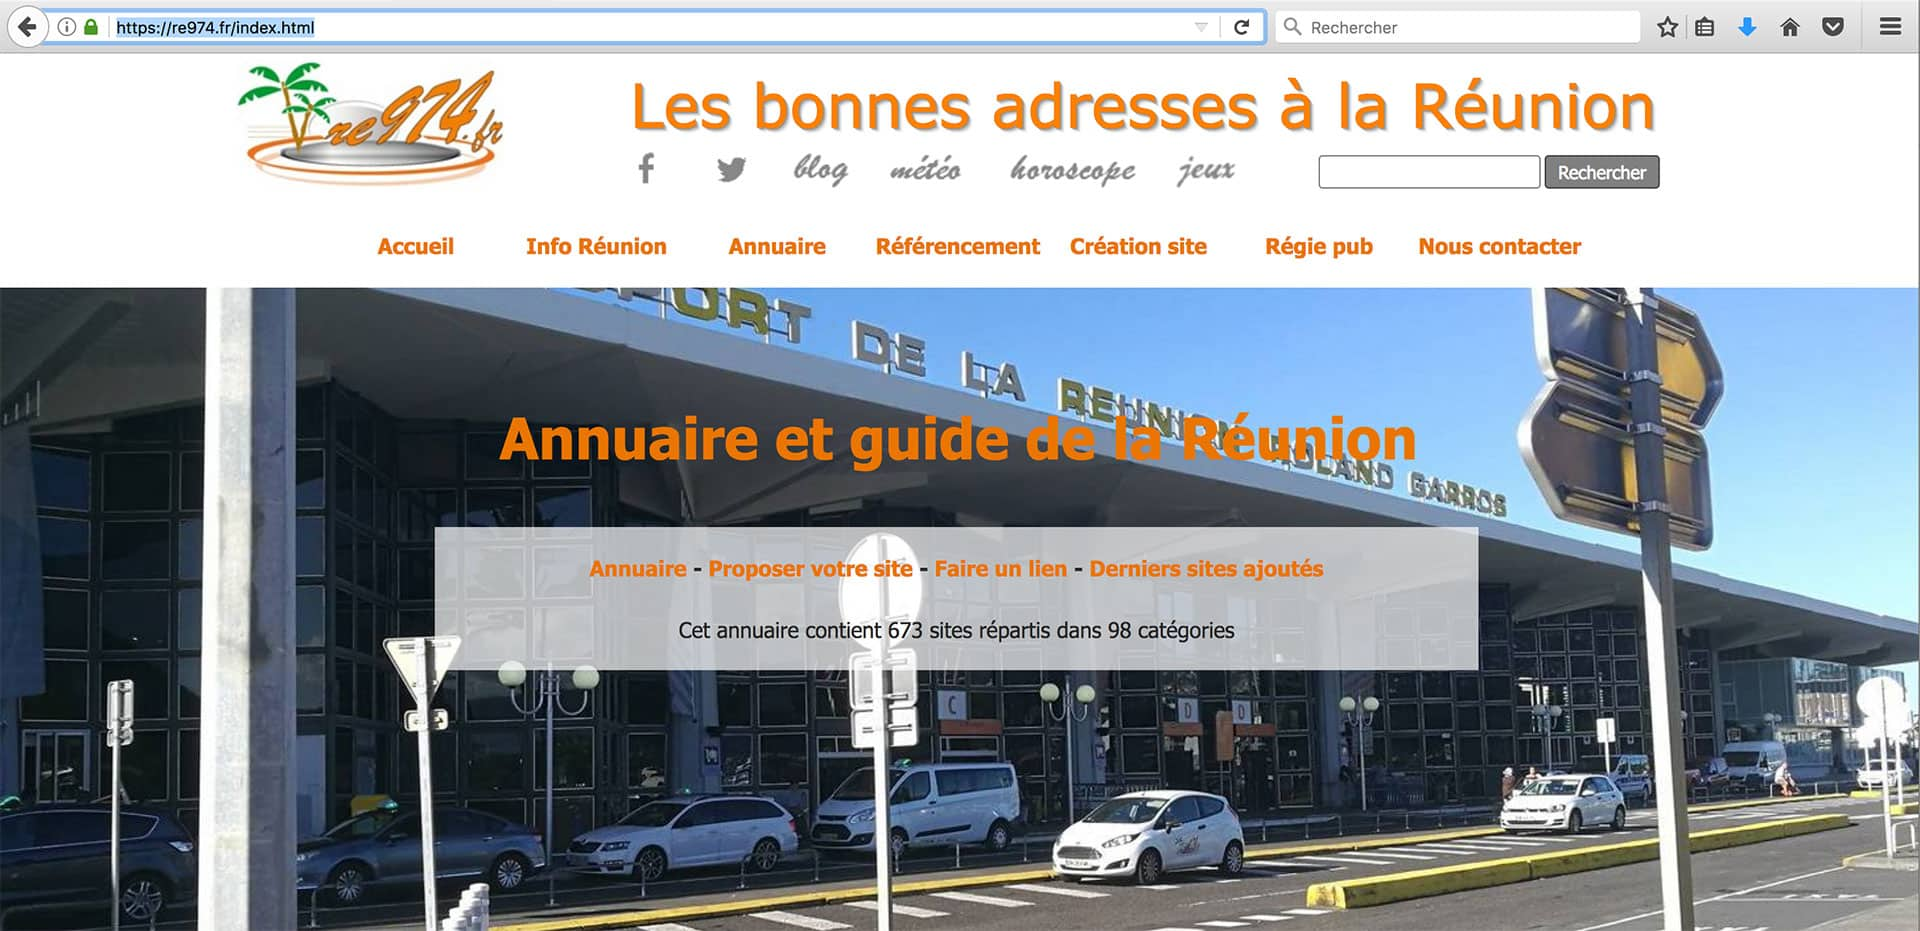 annuaire referencement reunion